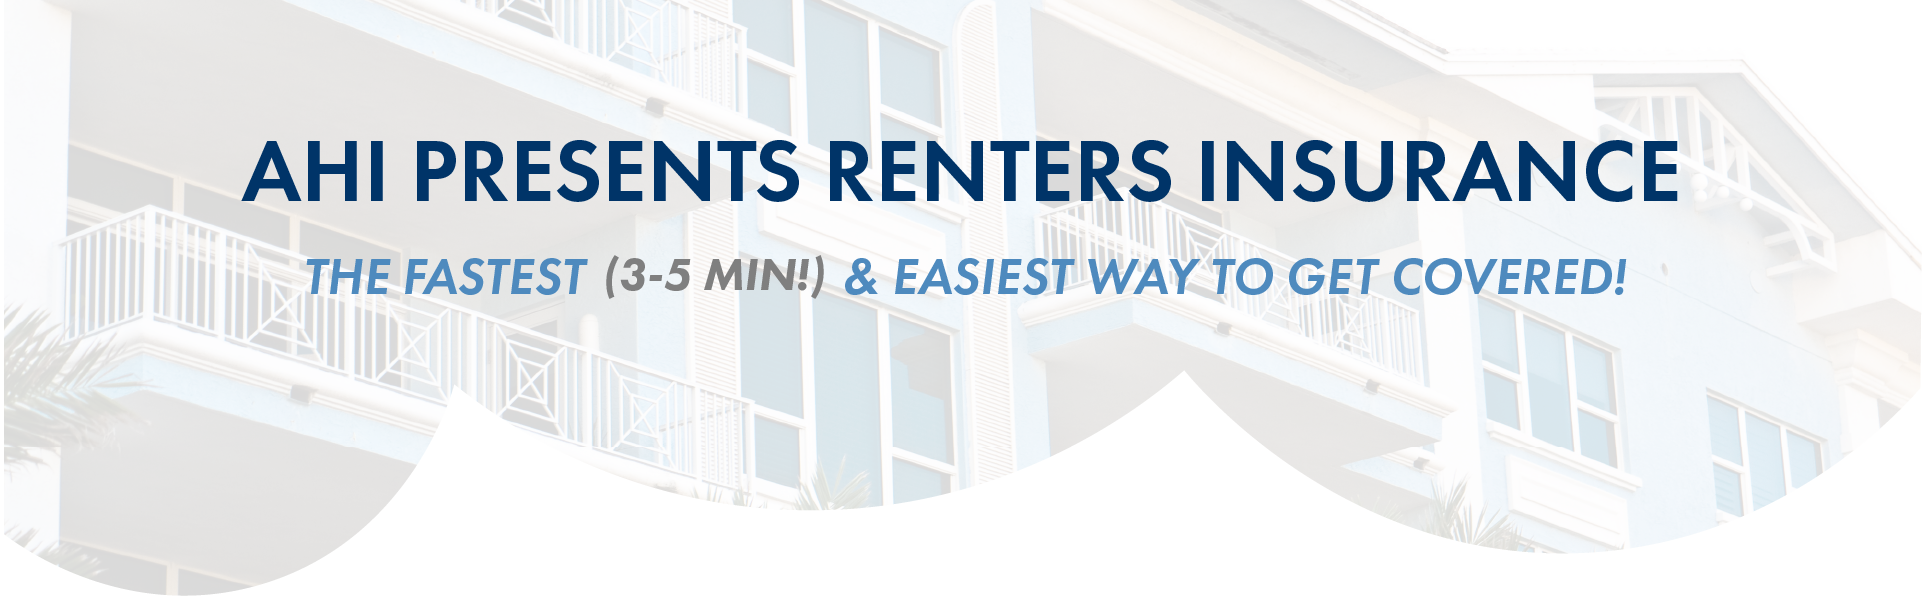 AHI Presents Renters Insurance. The fastest (3-5 min!) and easiest way to get covered!